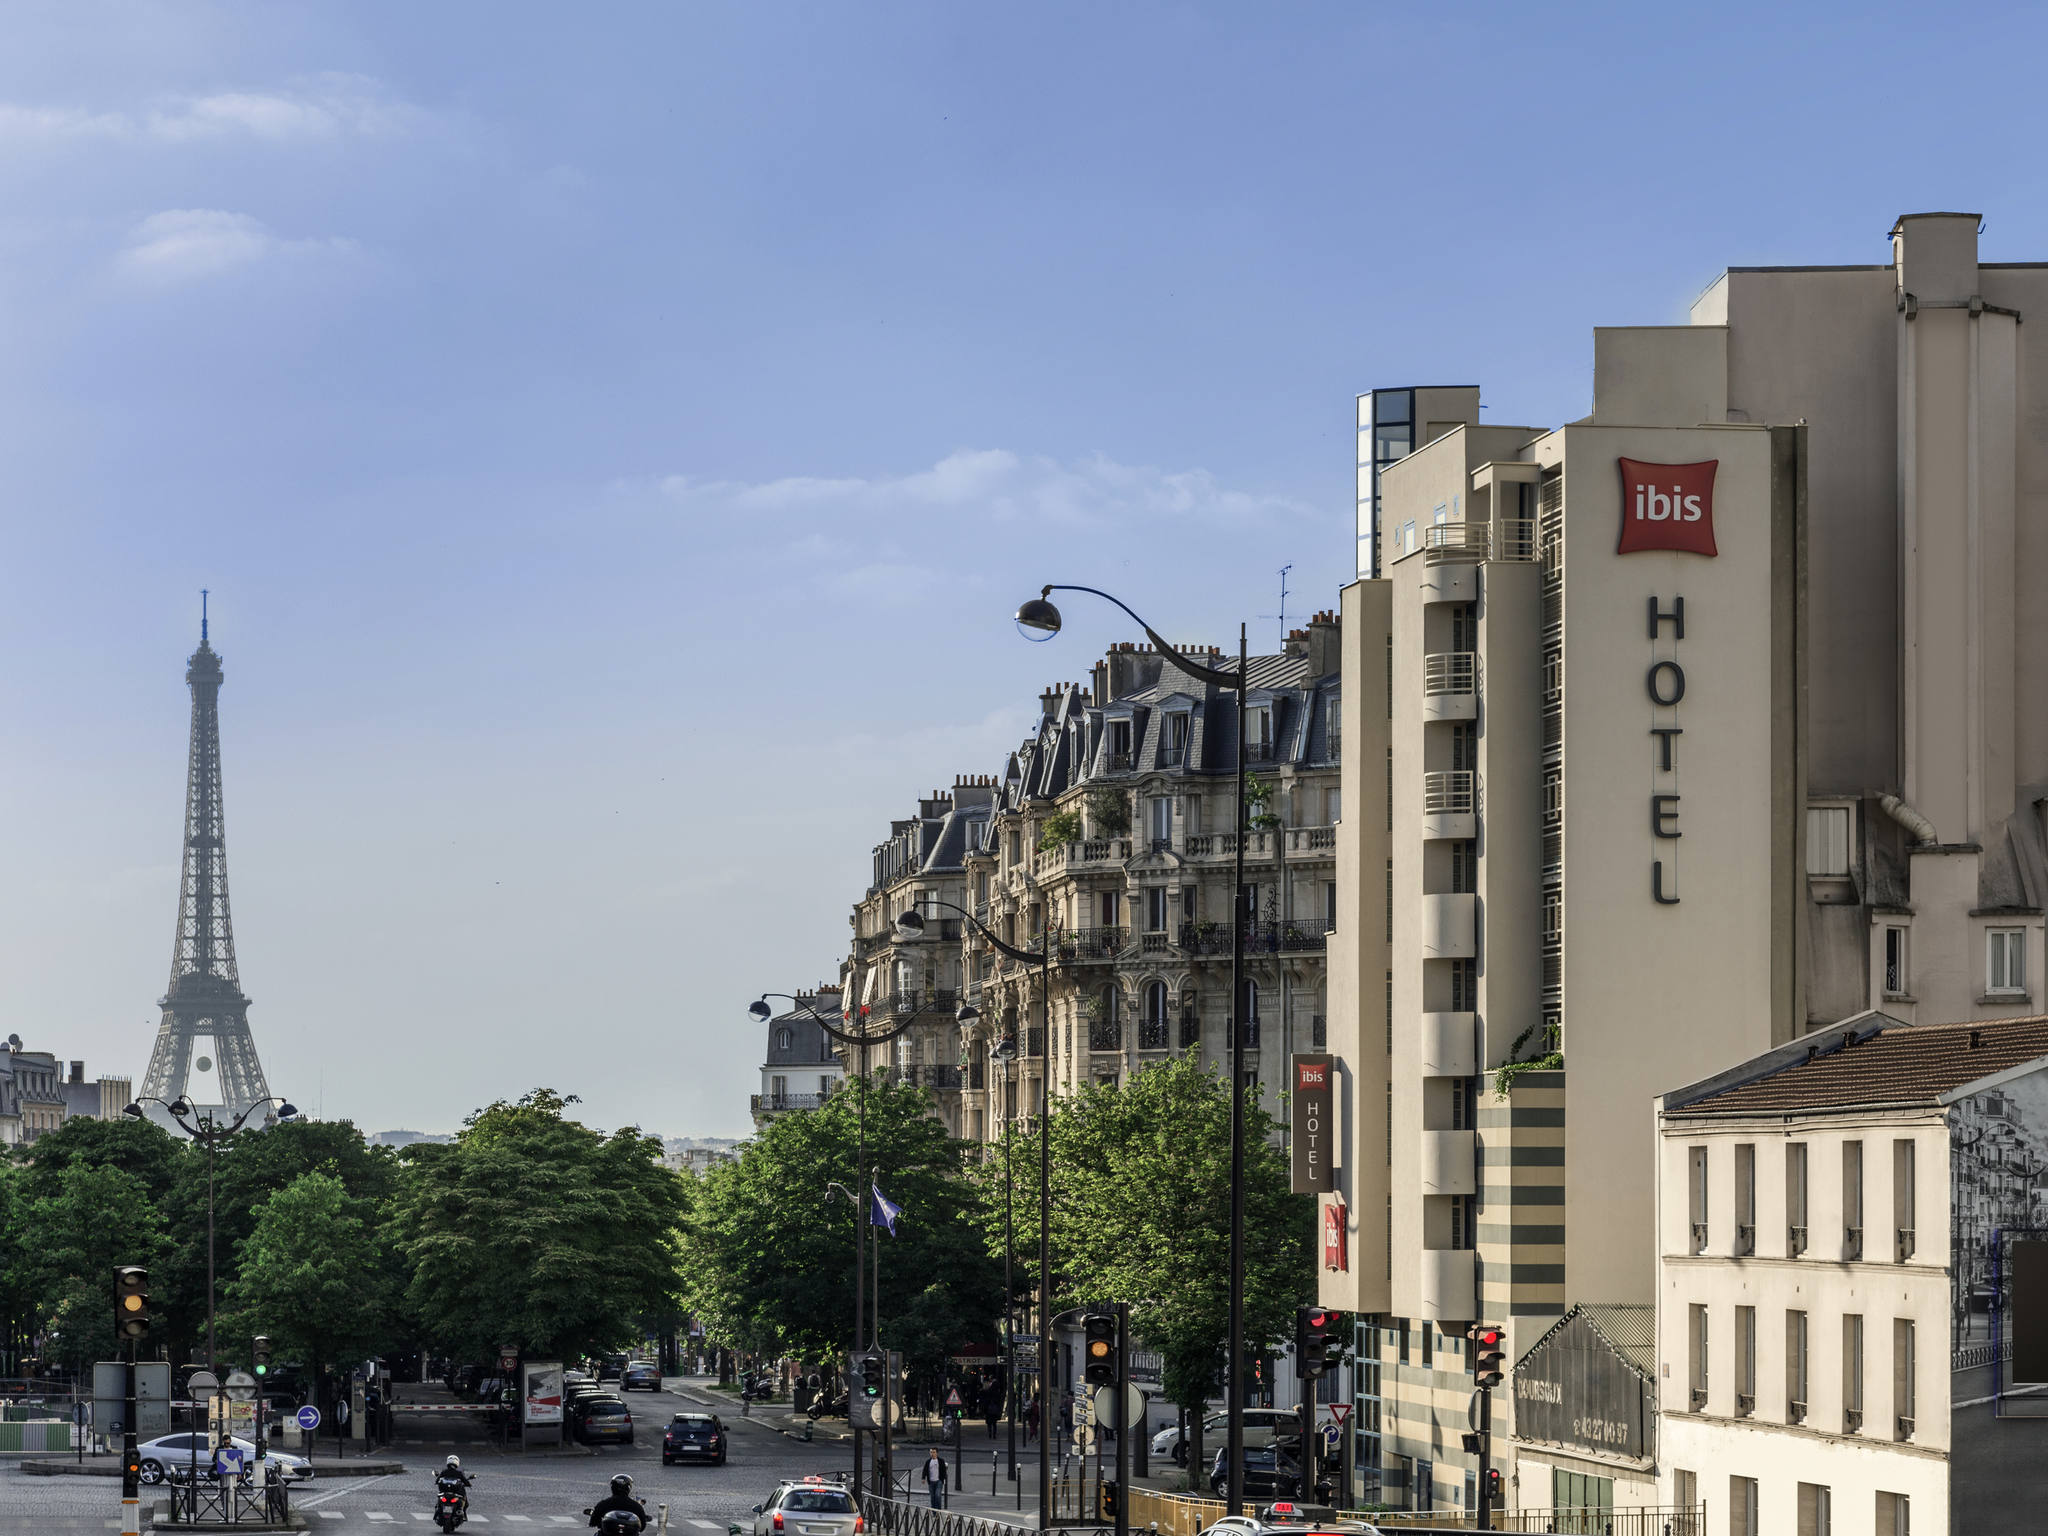 Hotel Ibis Paris Gare Montparne 15th